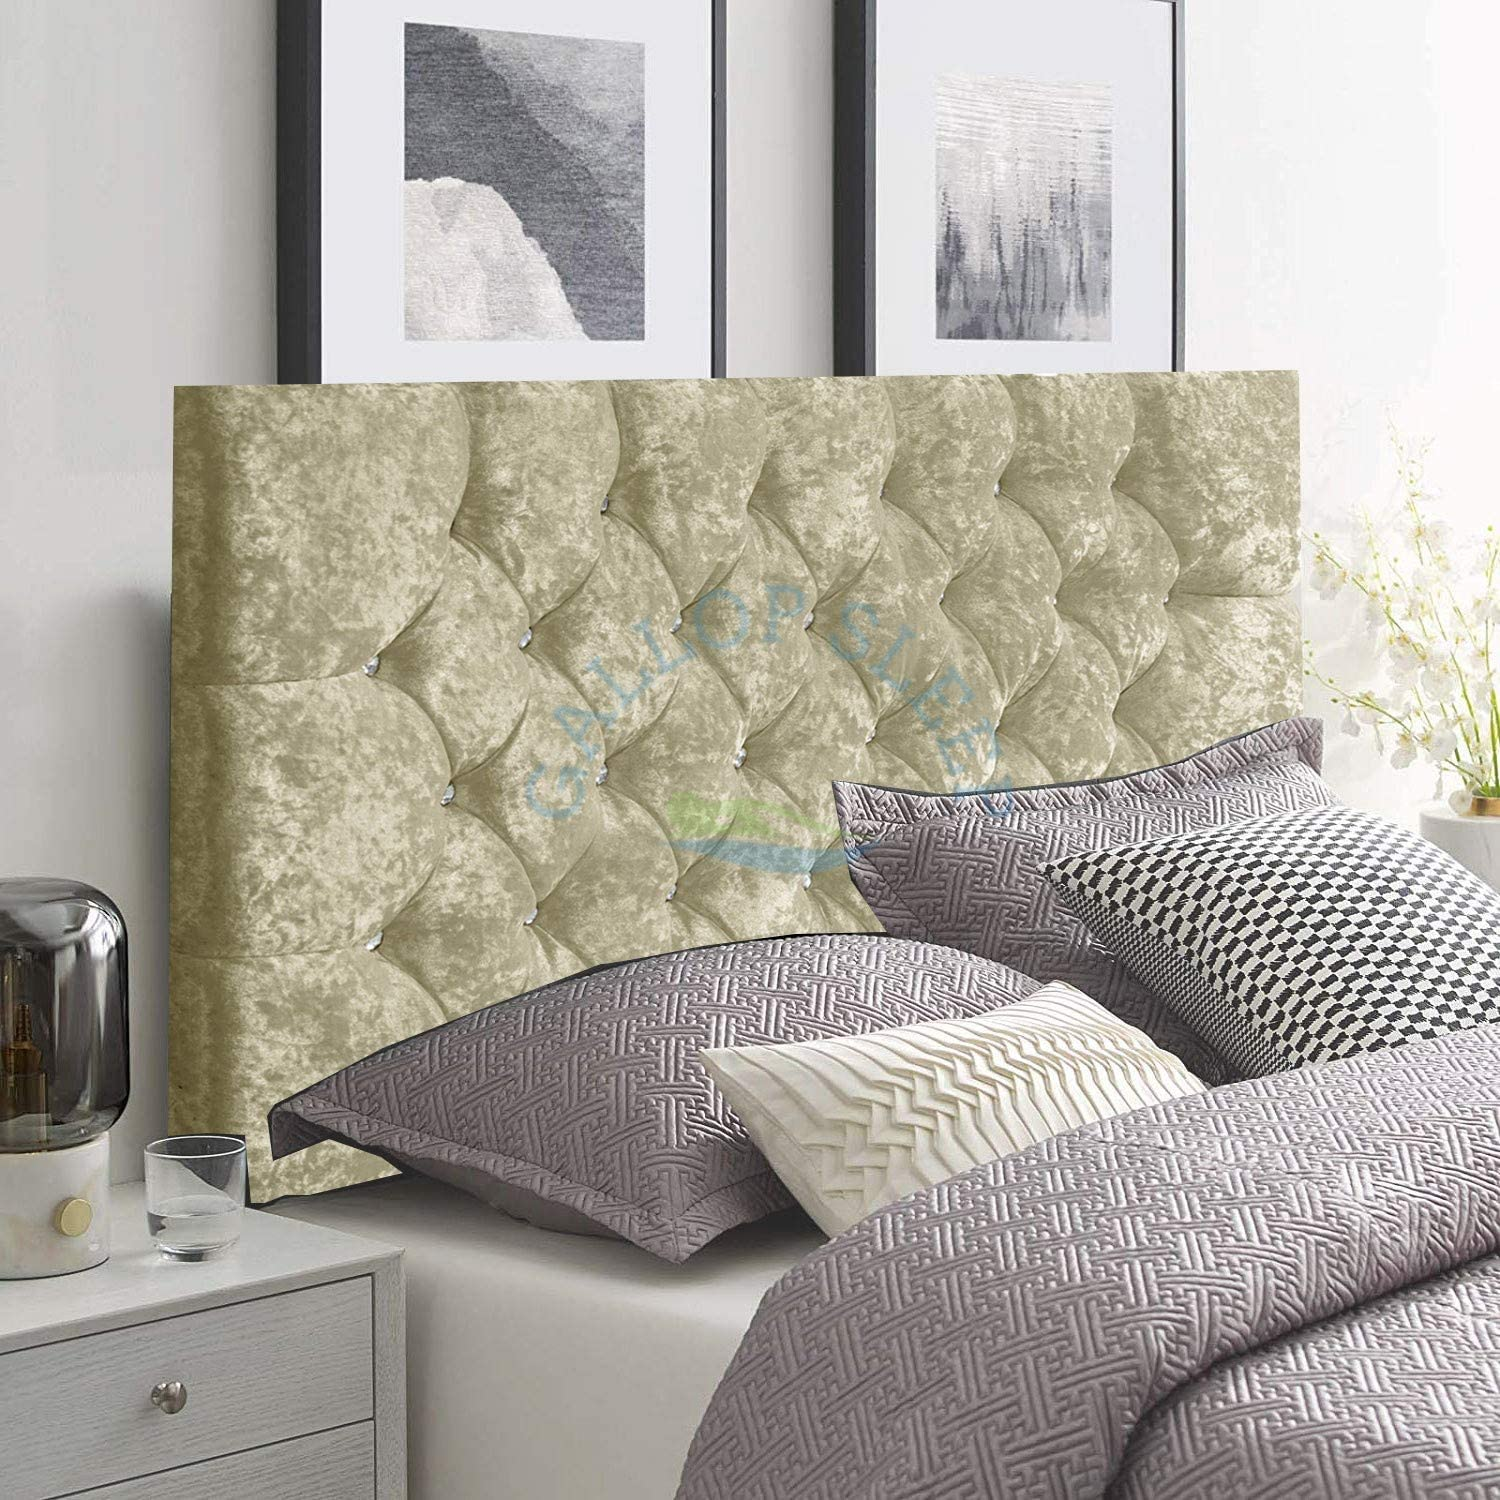 Gallop sleep Chesterfield Headboard in Crush velvet for Divan Bed with  Diamante Buttons Silver, Double 21 FEET 21 INCHES, Height 221 INCHES